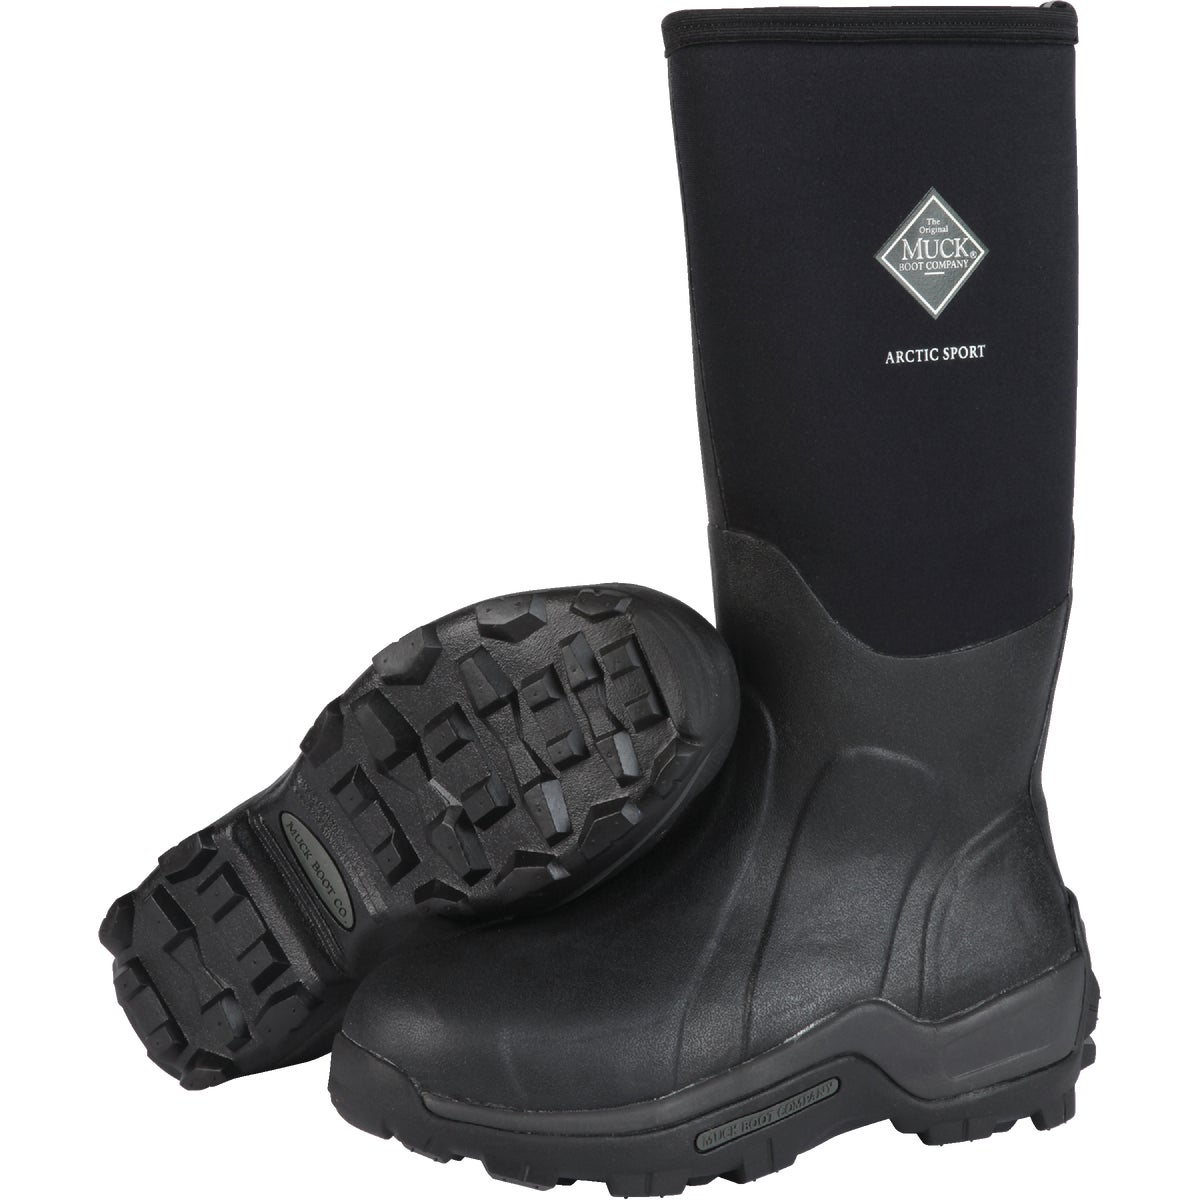 SZ 8 ARTIC SPORT HI BOOT - ASP000-8 by Muck Boot Team J